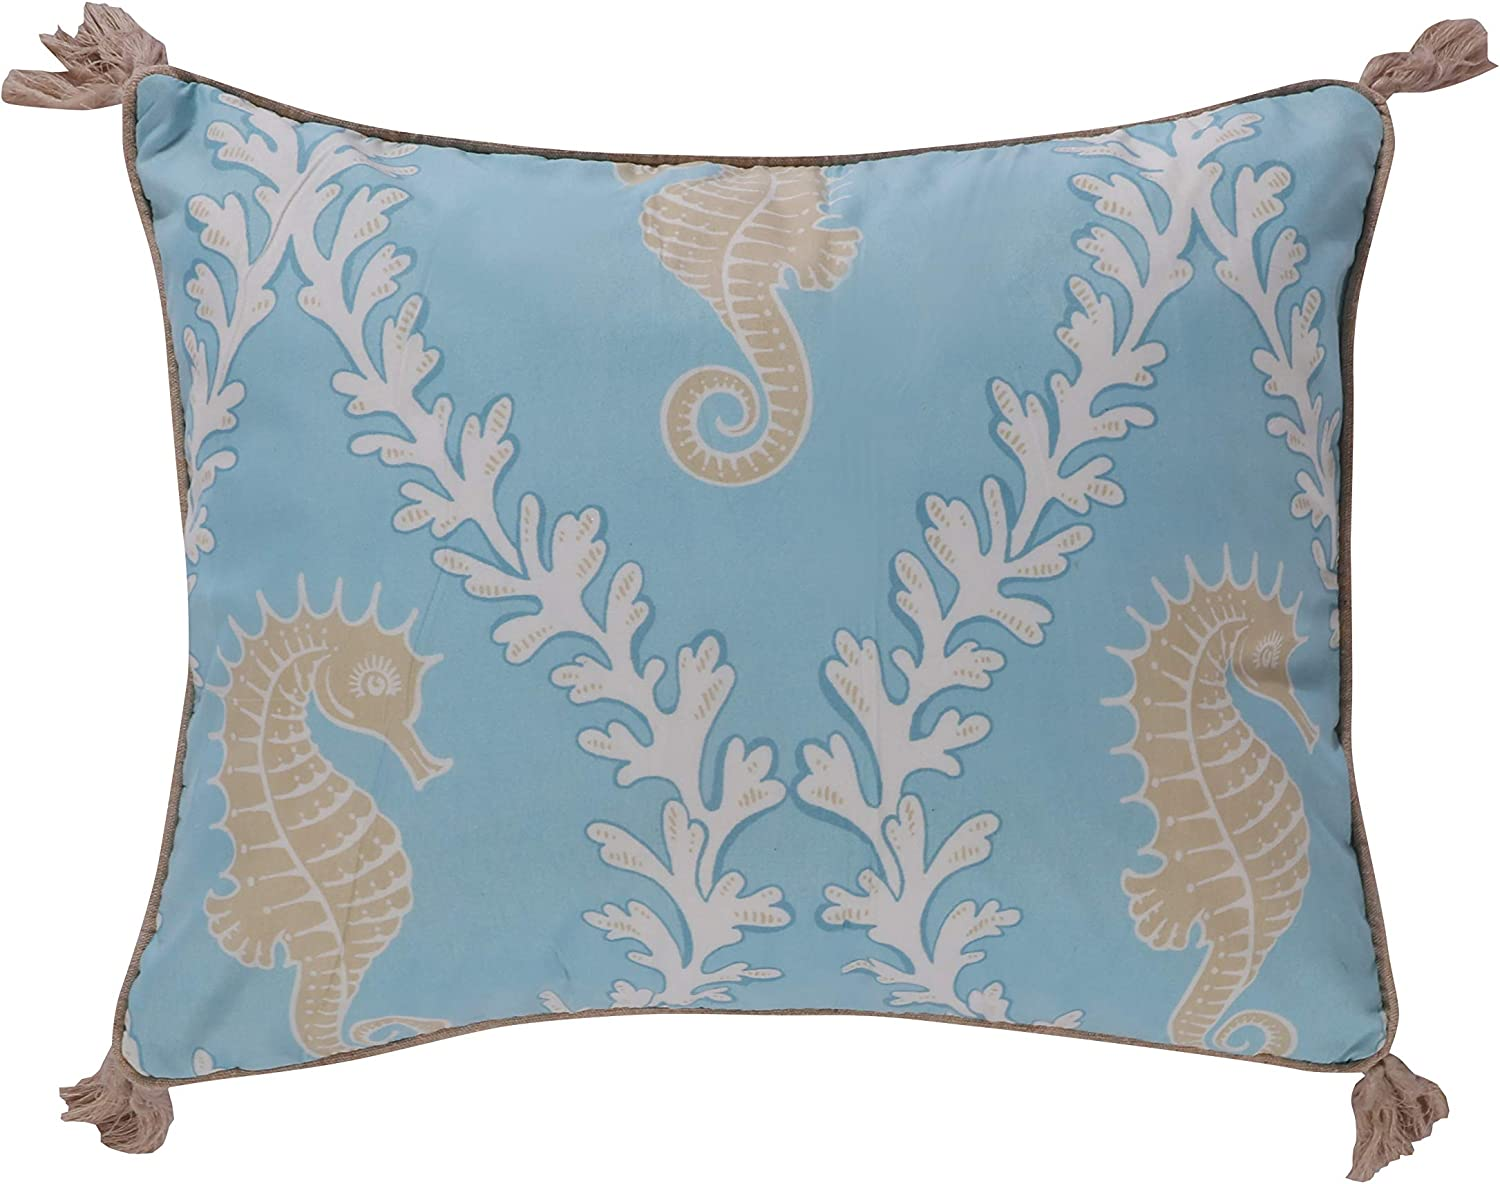 Amazon Com Levtex Home Kailua Decorative Pillow 14x18in Seahorse Teal Blue Cream And Taupe Feather Filled Home Kitchen